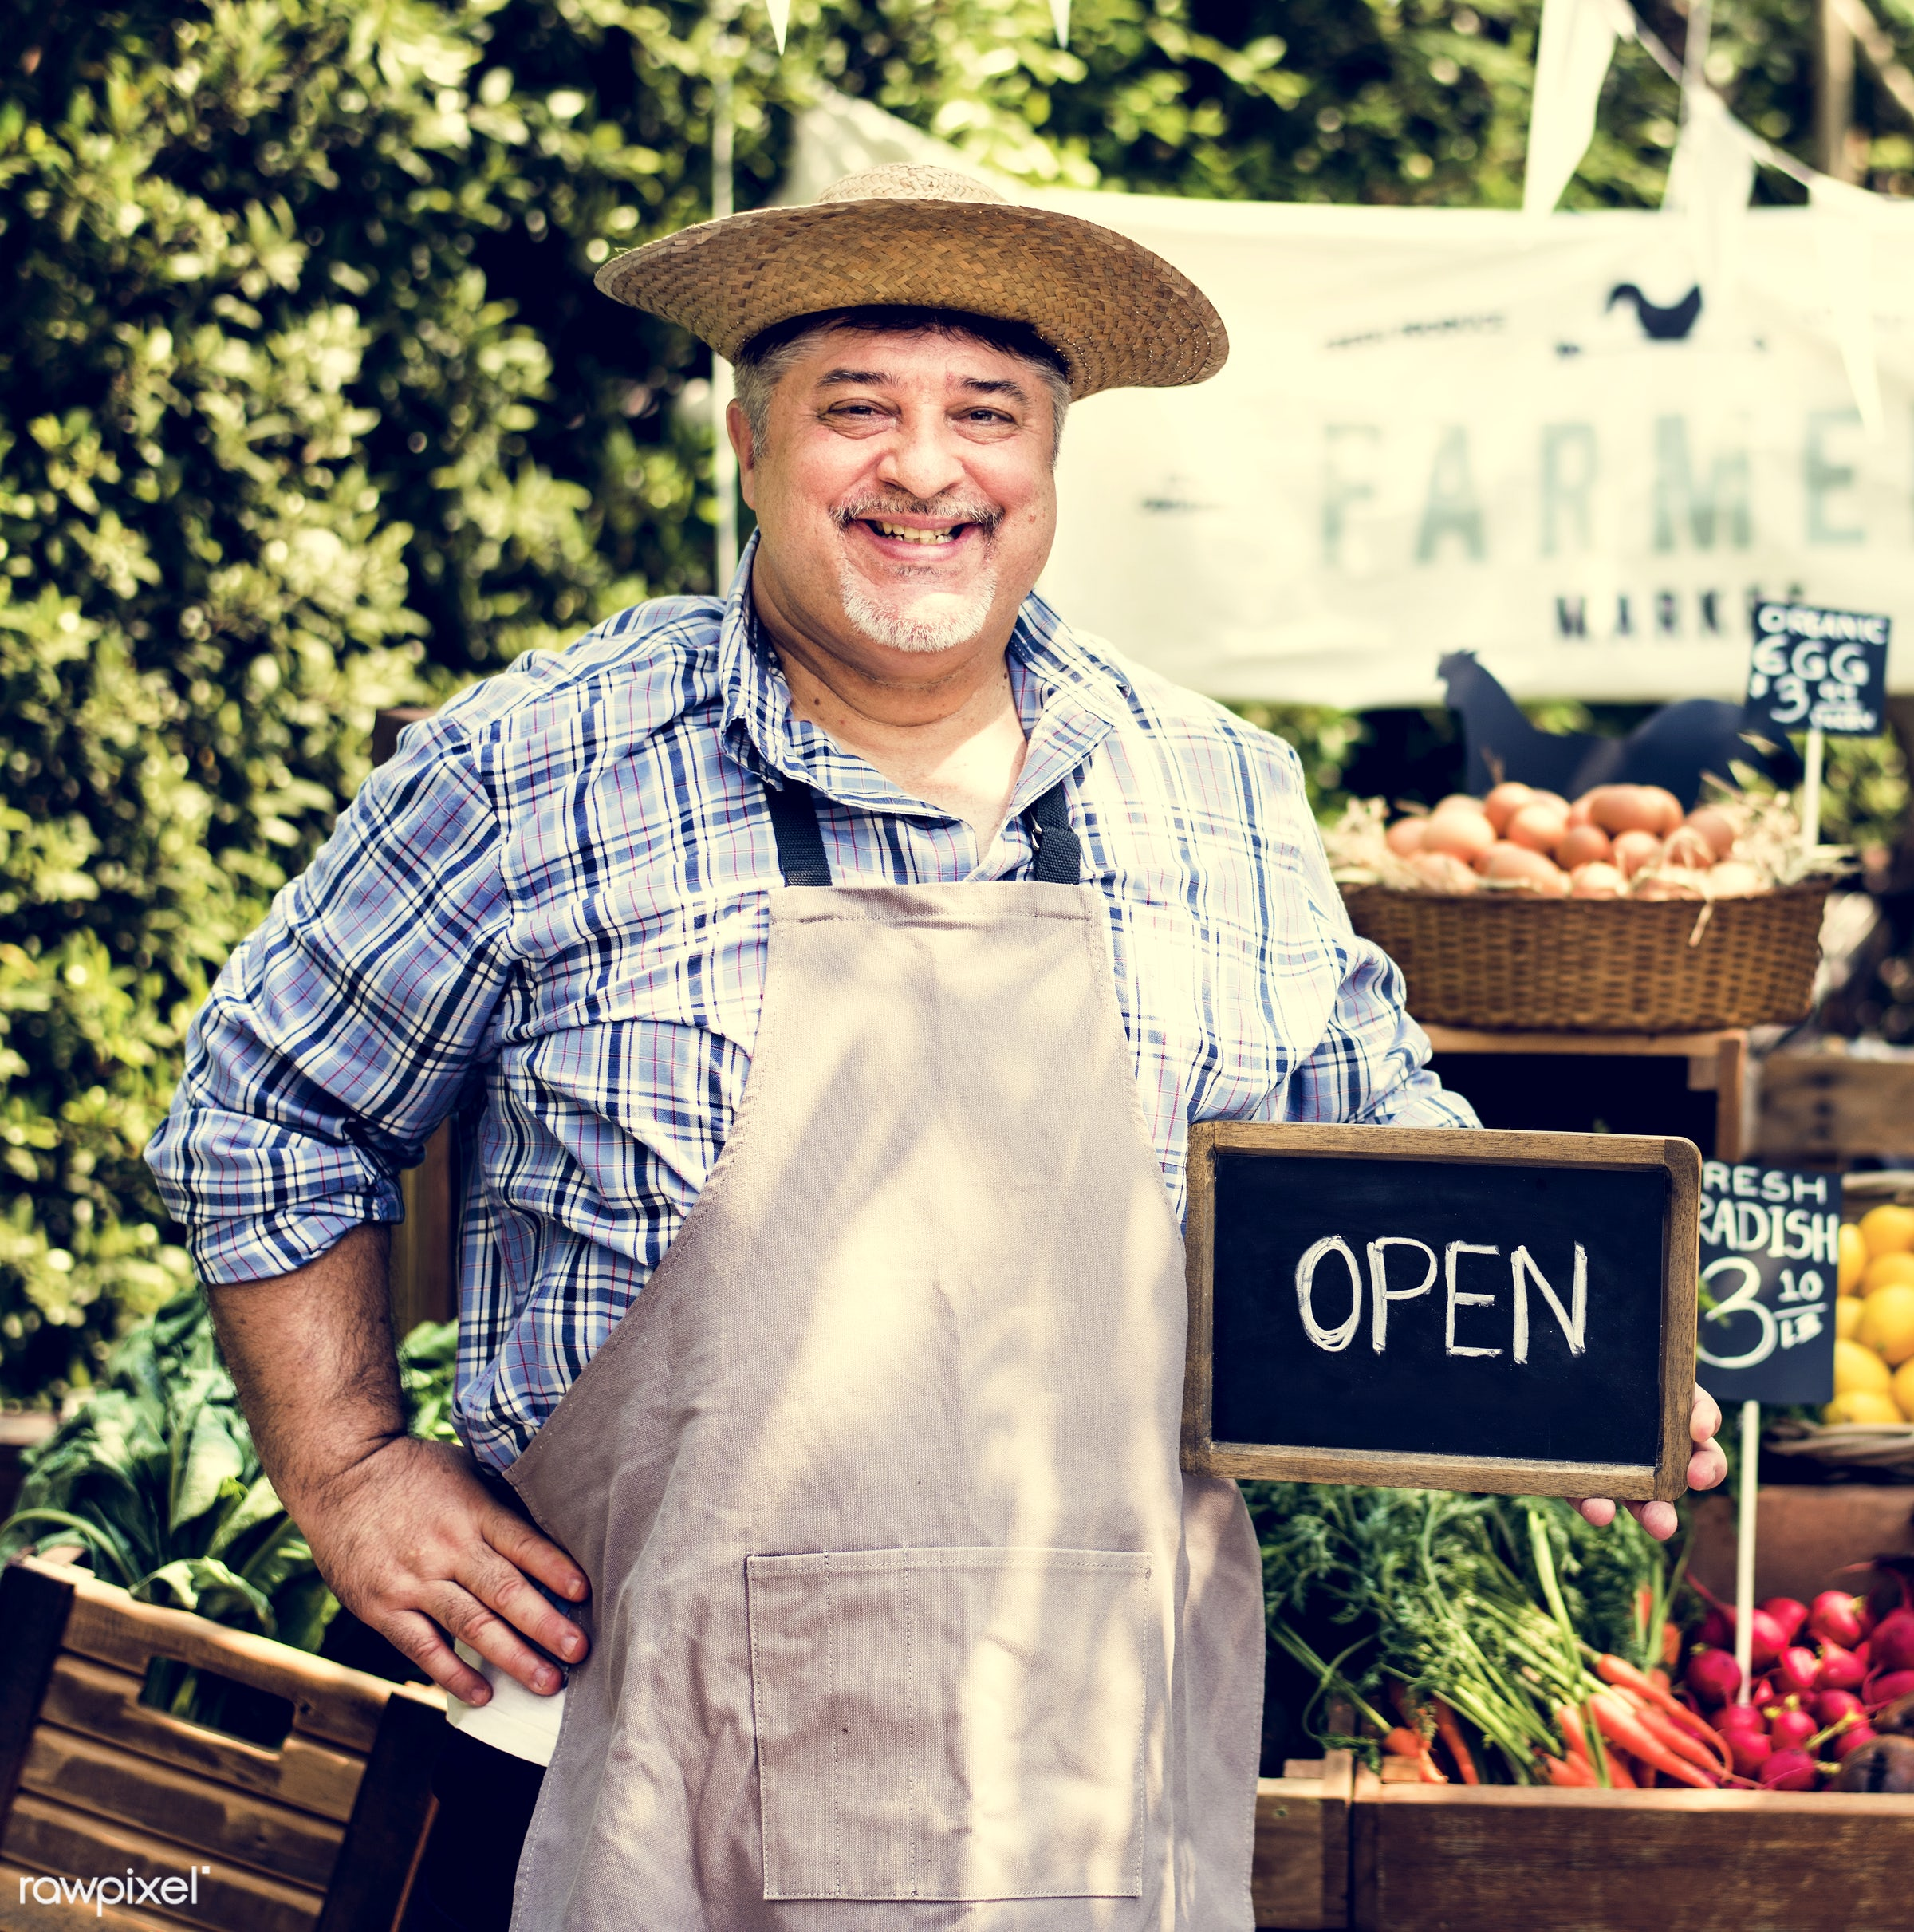 grocery, person, store, stall, people, lifestyle, smiling, fruit, selling, health, nutrition, gardener, market, food, owner...